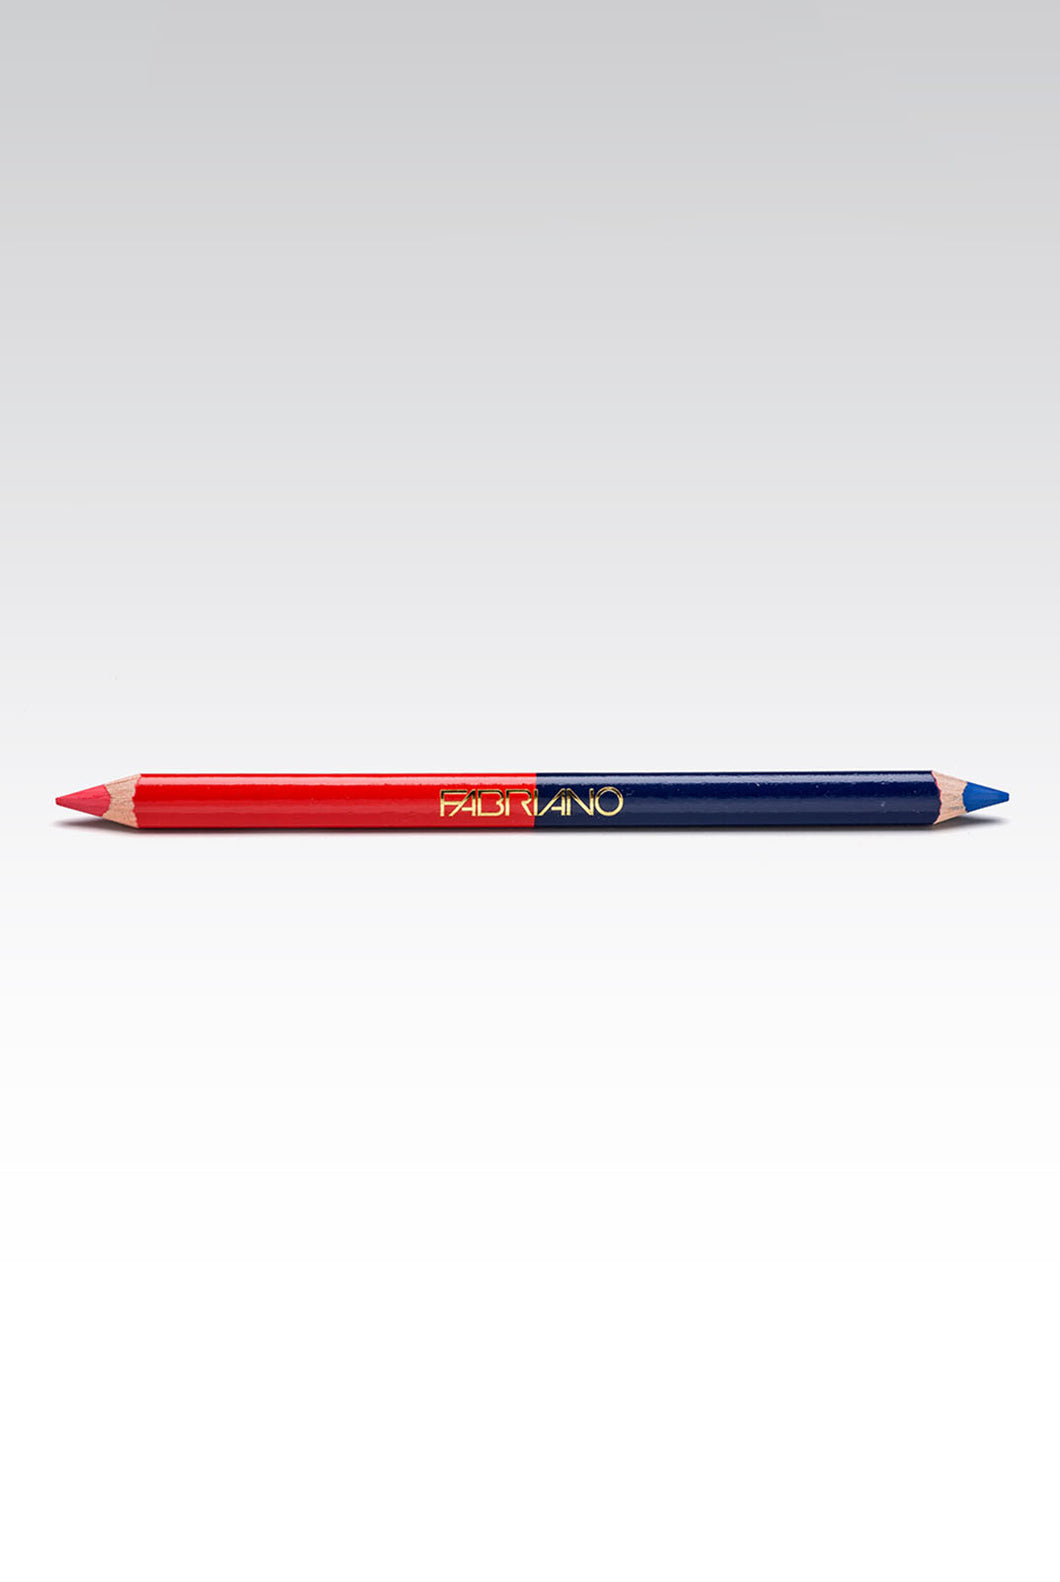 Fabriano Boutique - Two-Tone Pencil - Red & Blue